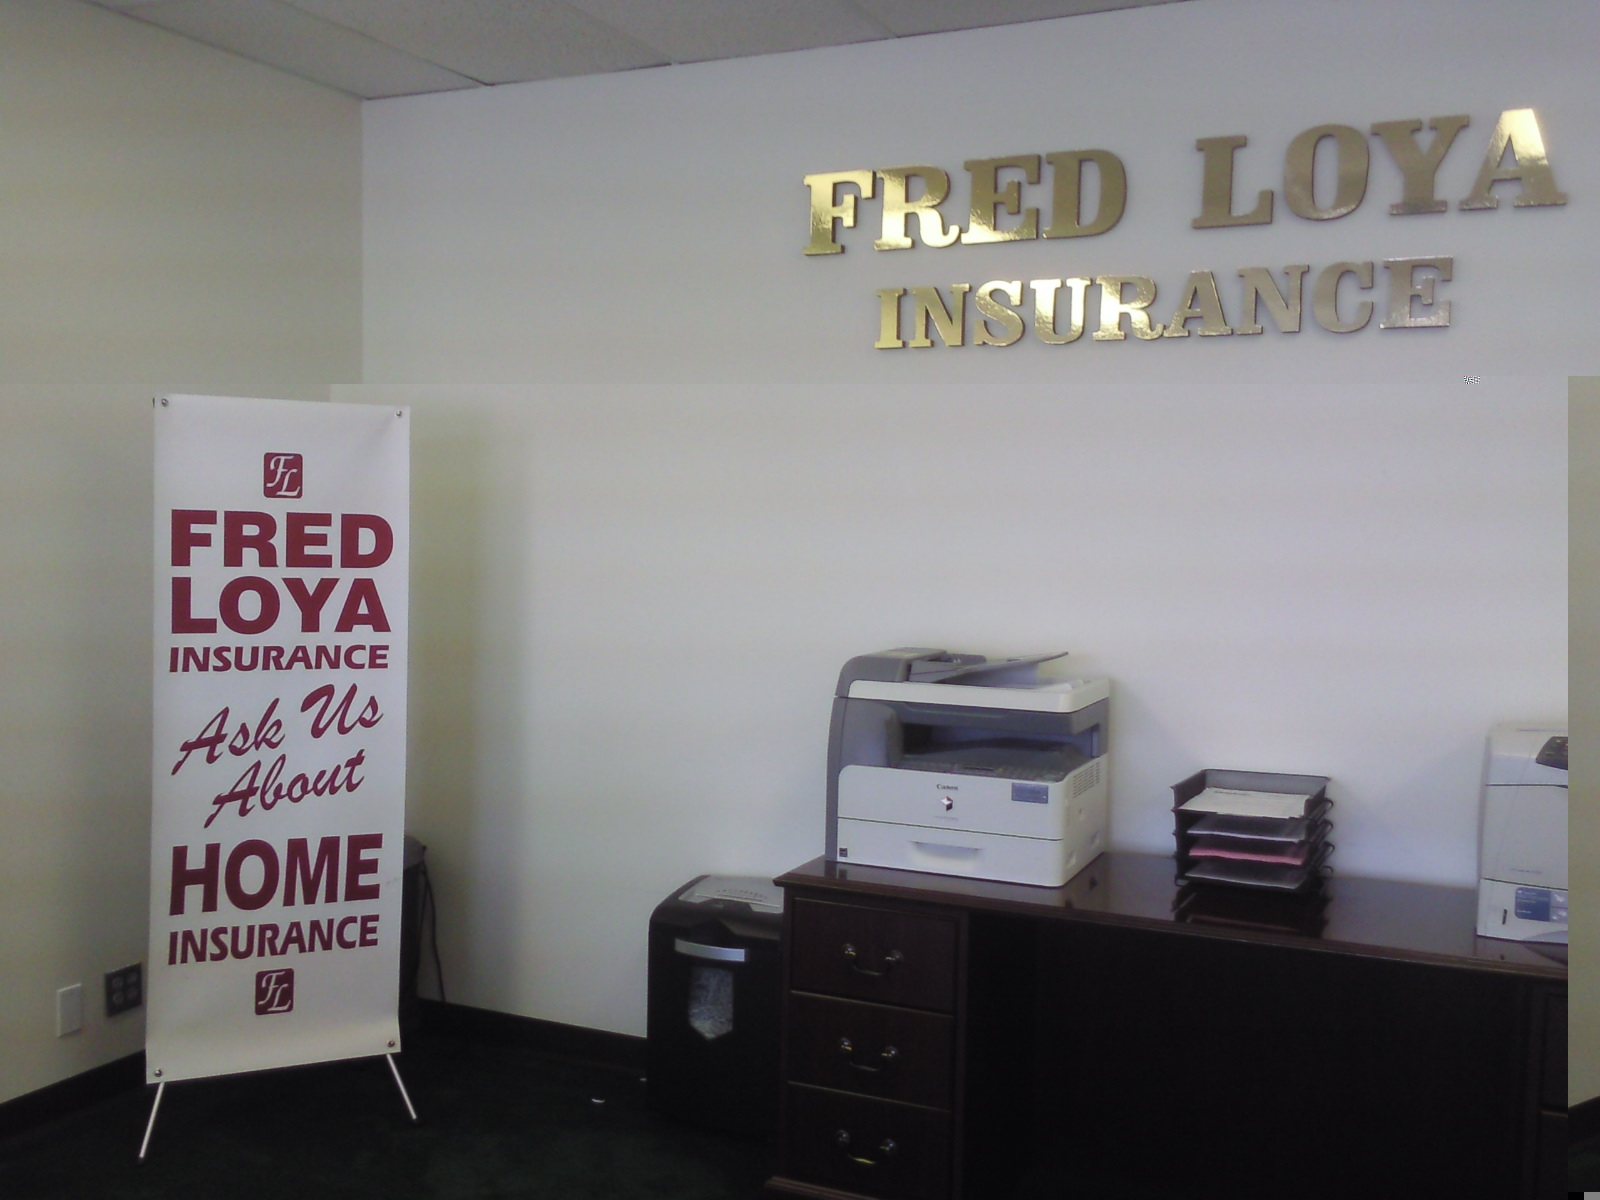 Fred Loya Insurance Quote Fred Loya Quote New Fred Loya Home Insurance Quotes 44Billionlater